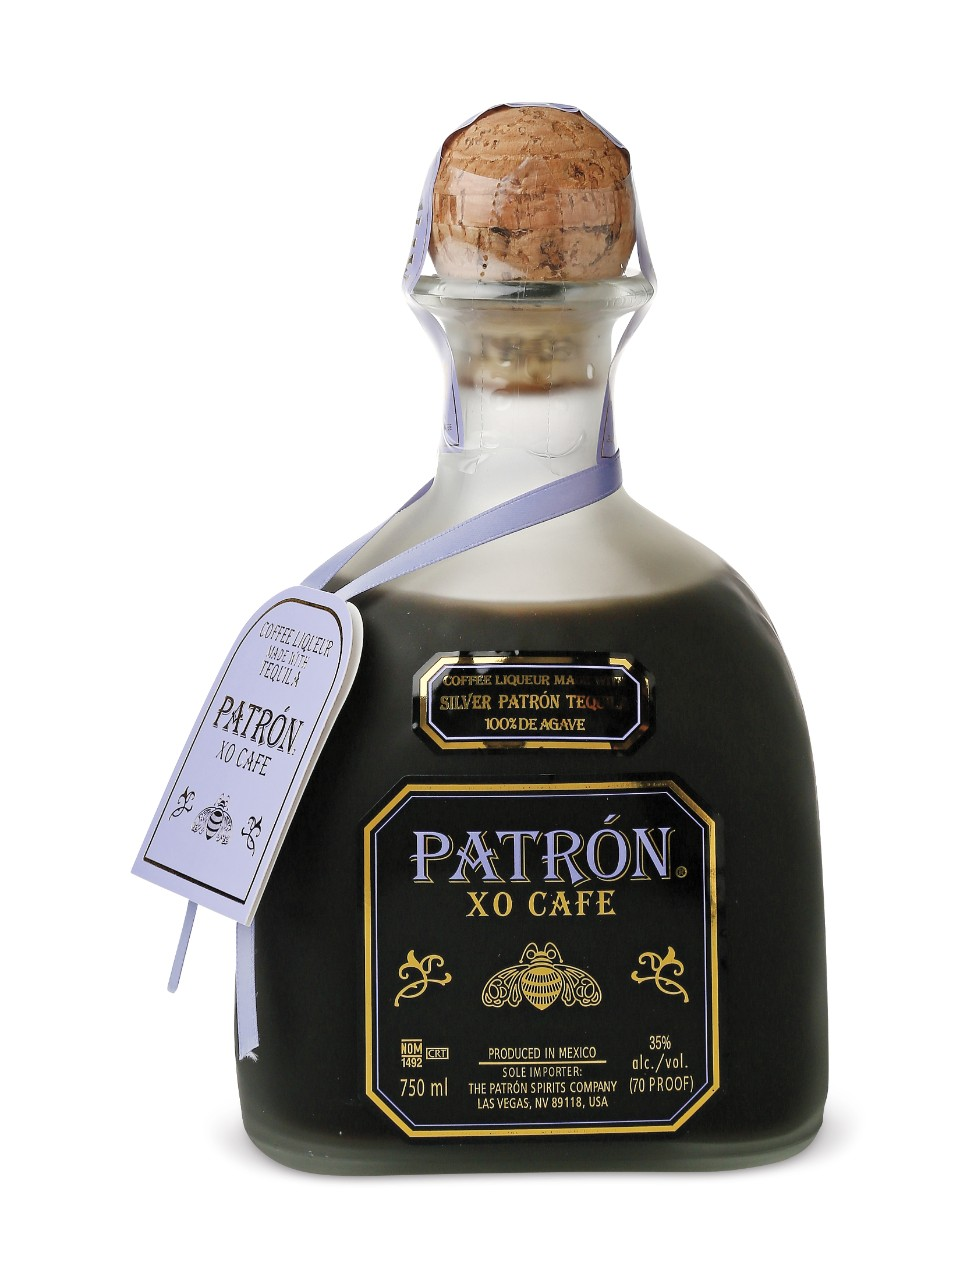 Recipe Patron Xo Cafe